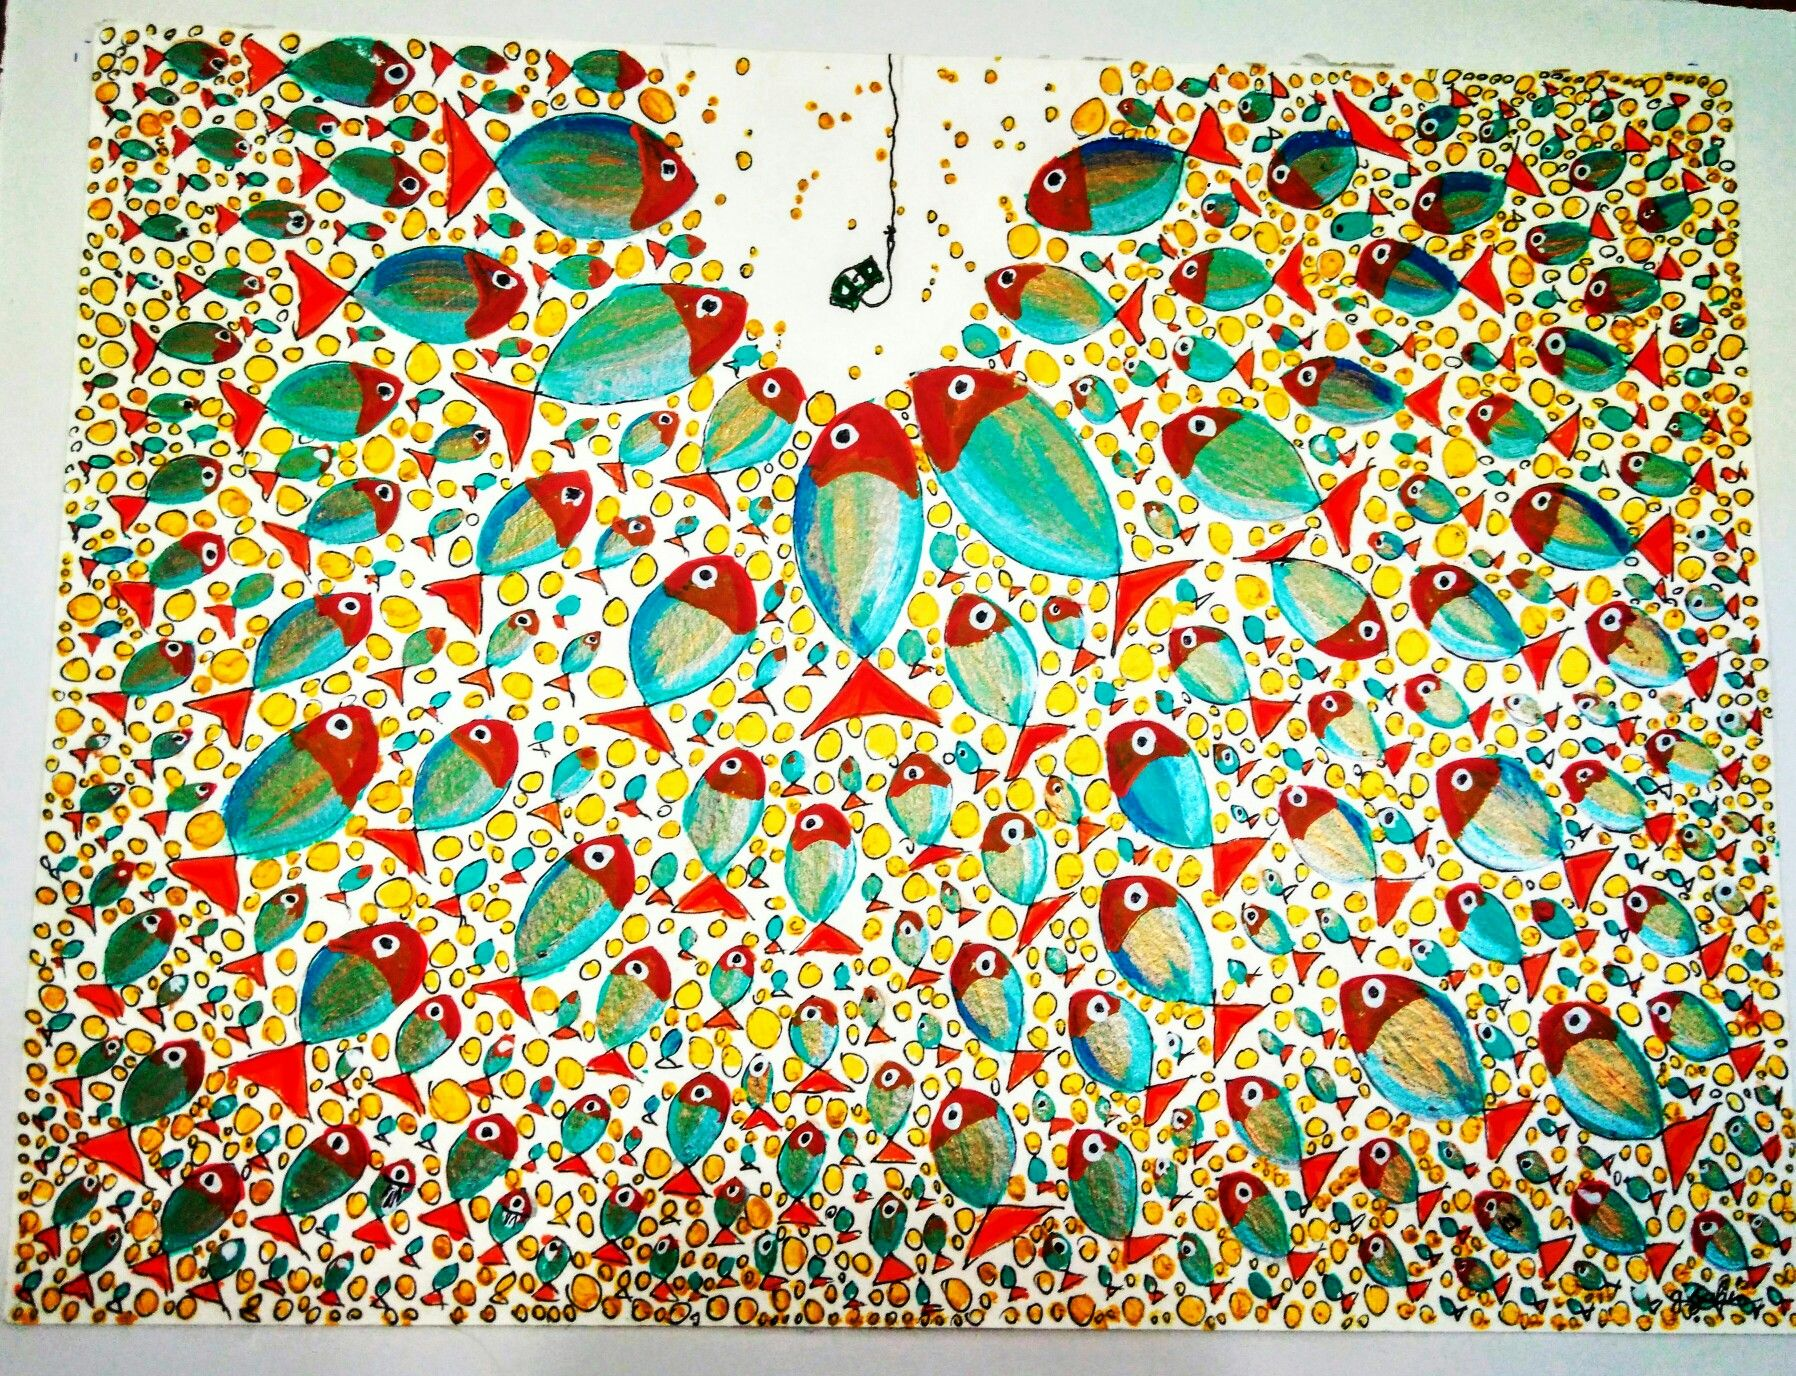 Art ceramic mosaic patchwork abstract mandala floral flowers turkuaz ...